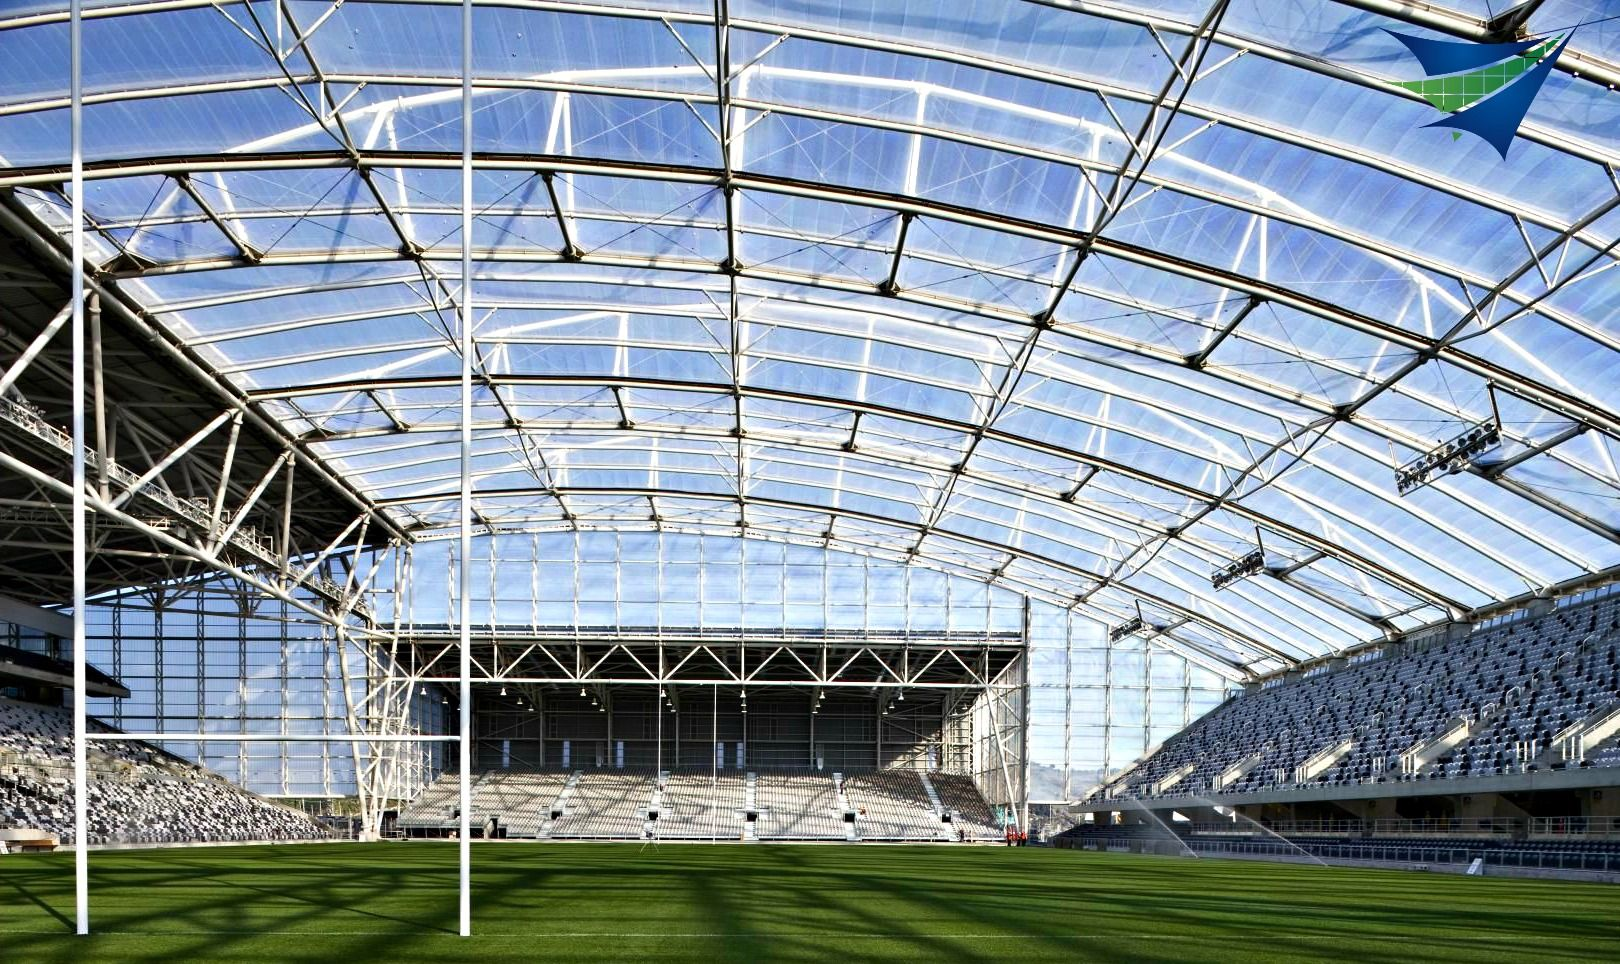 Etfe Foil Roof Systems Replace Glass And Cost Much Less